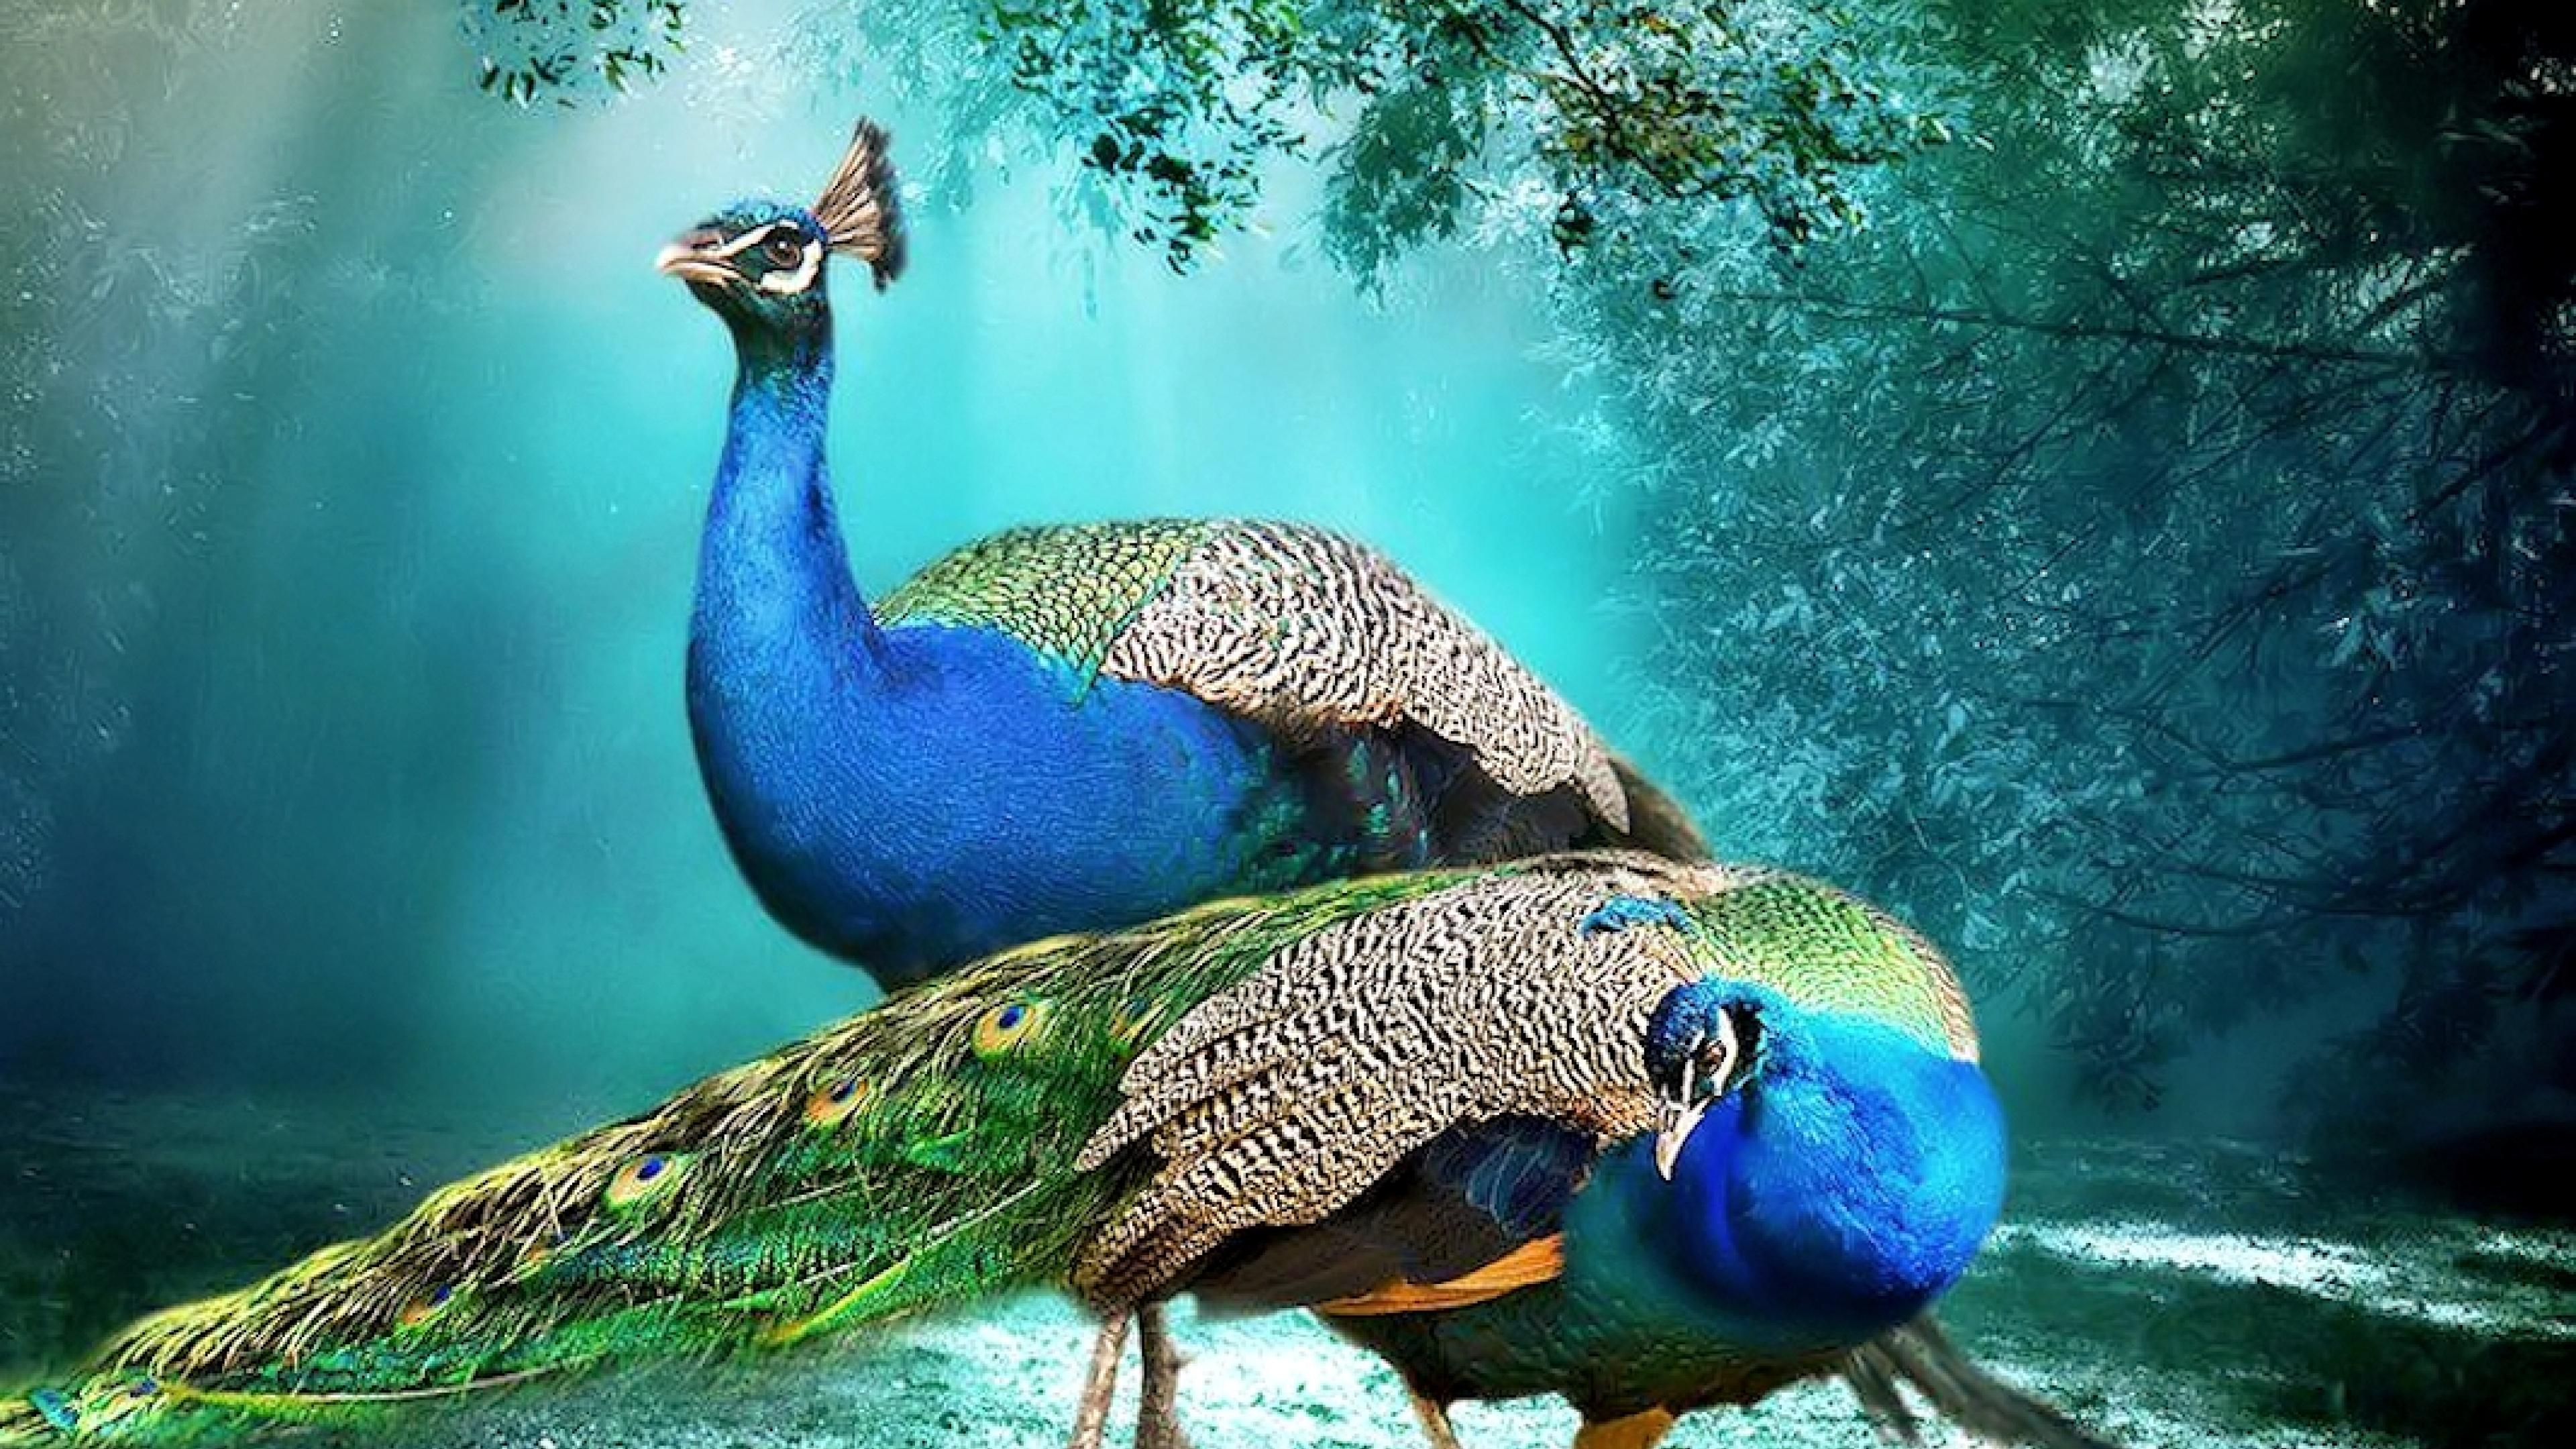 Nature Hd Wallpapers 1080p 3d Beautiful Background Peacock Pair Hd Wallpaper Beautiful